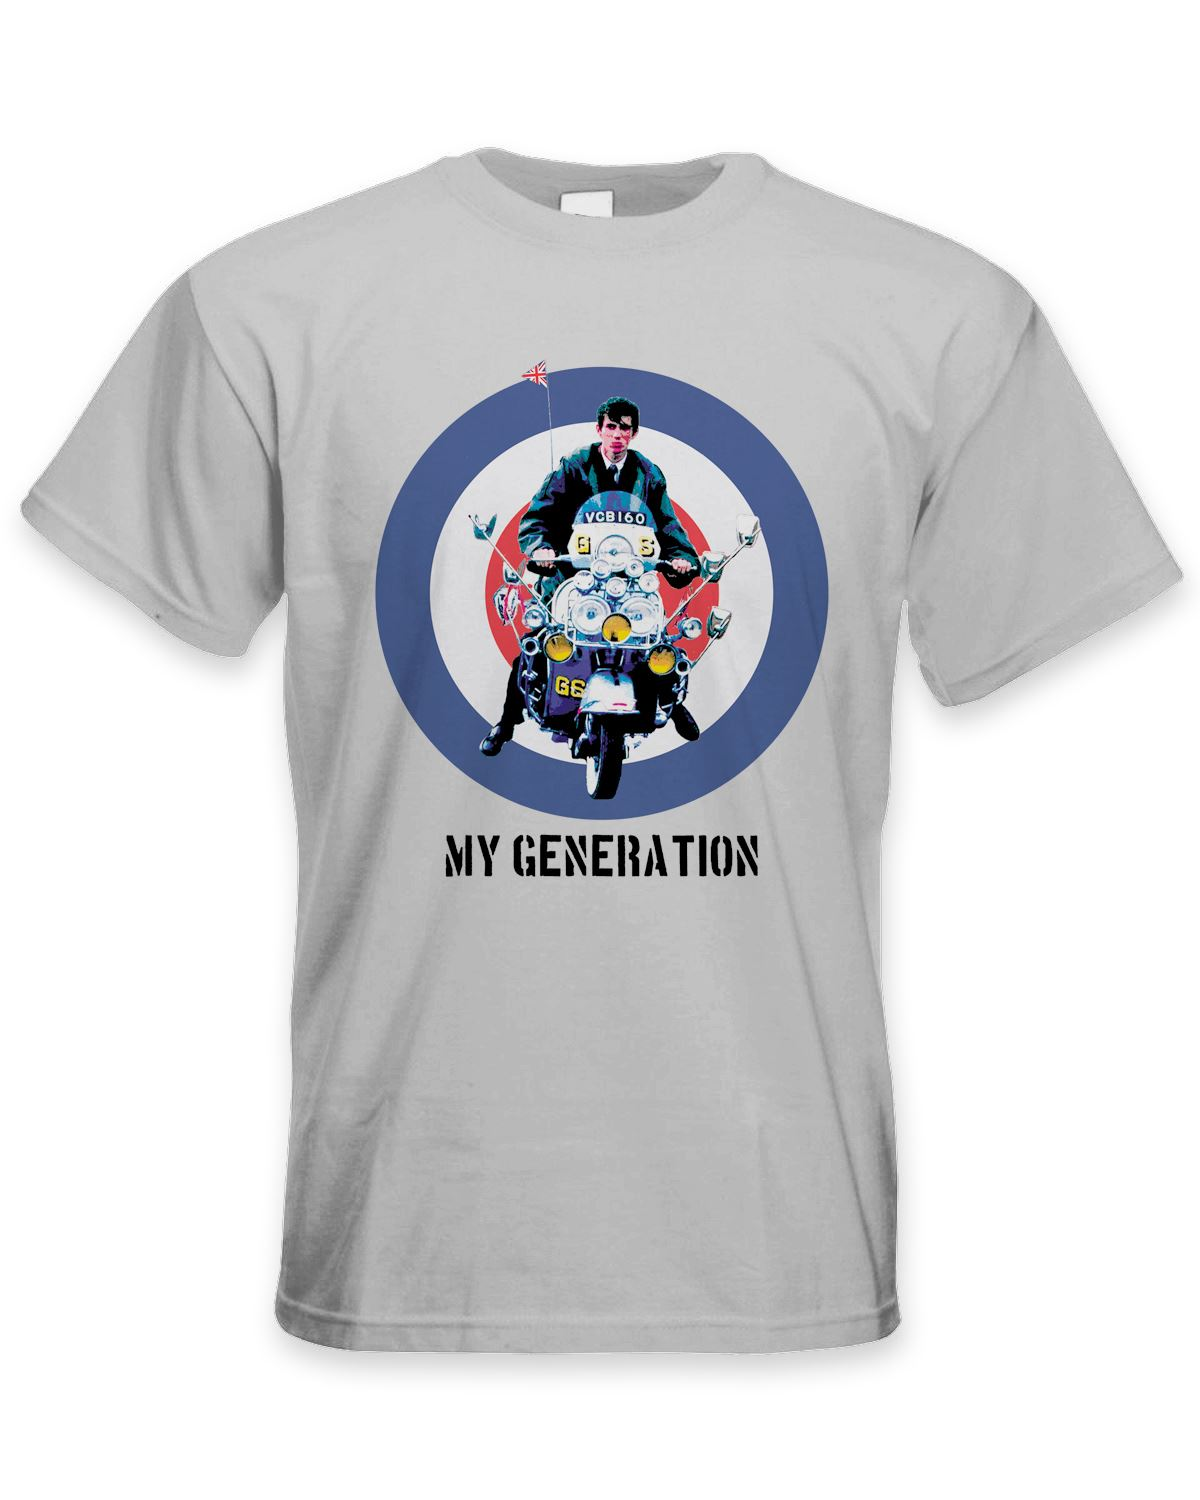 release date b526c 54a71 Details about My Generation Mod Scooter Men's T-Shirt - Jam Fashion The Who  Quadrophenia